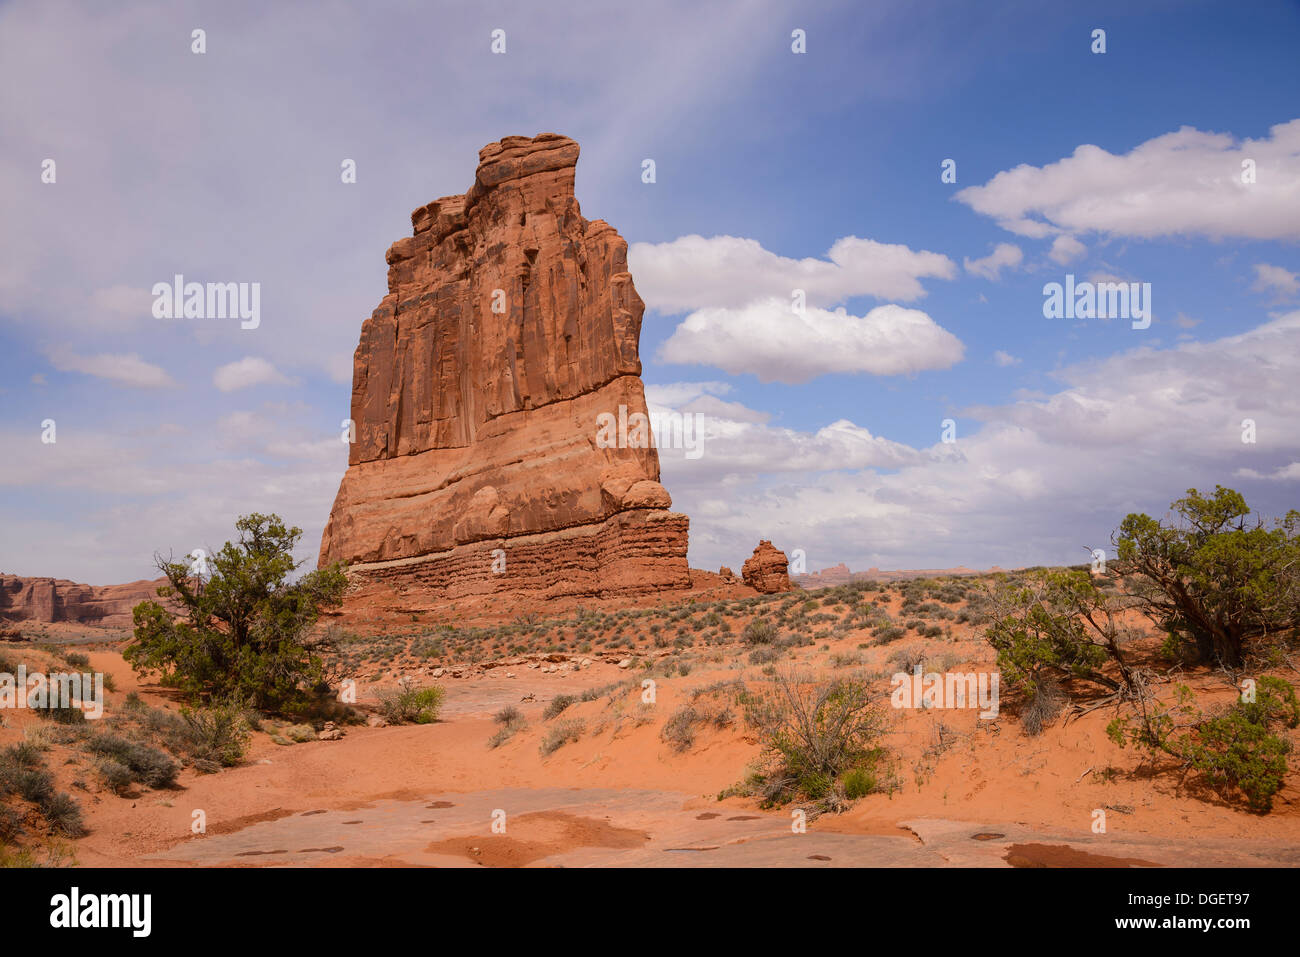 The Organ, Courthouse Towers, Arches National Park, Utah, USA - Stock Image